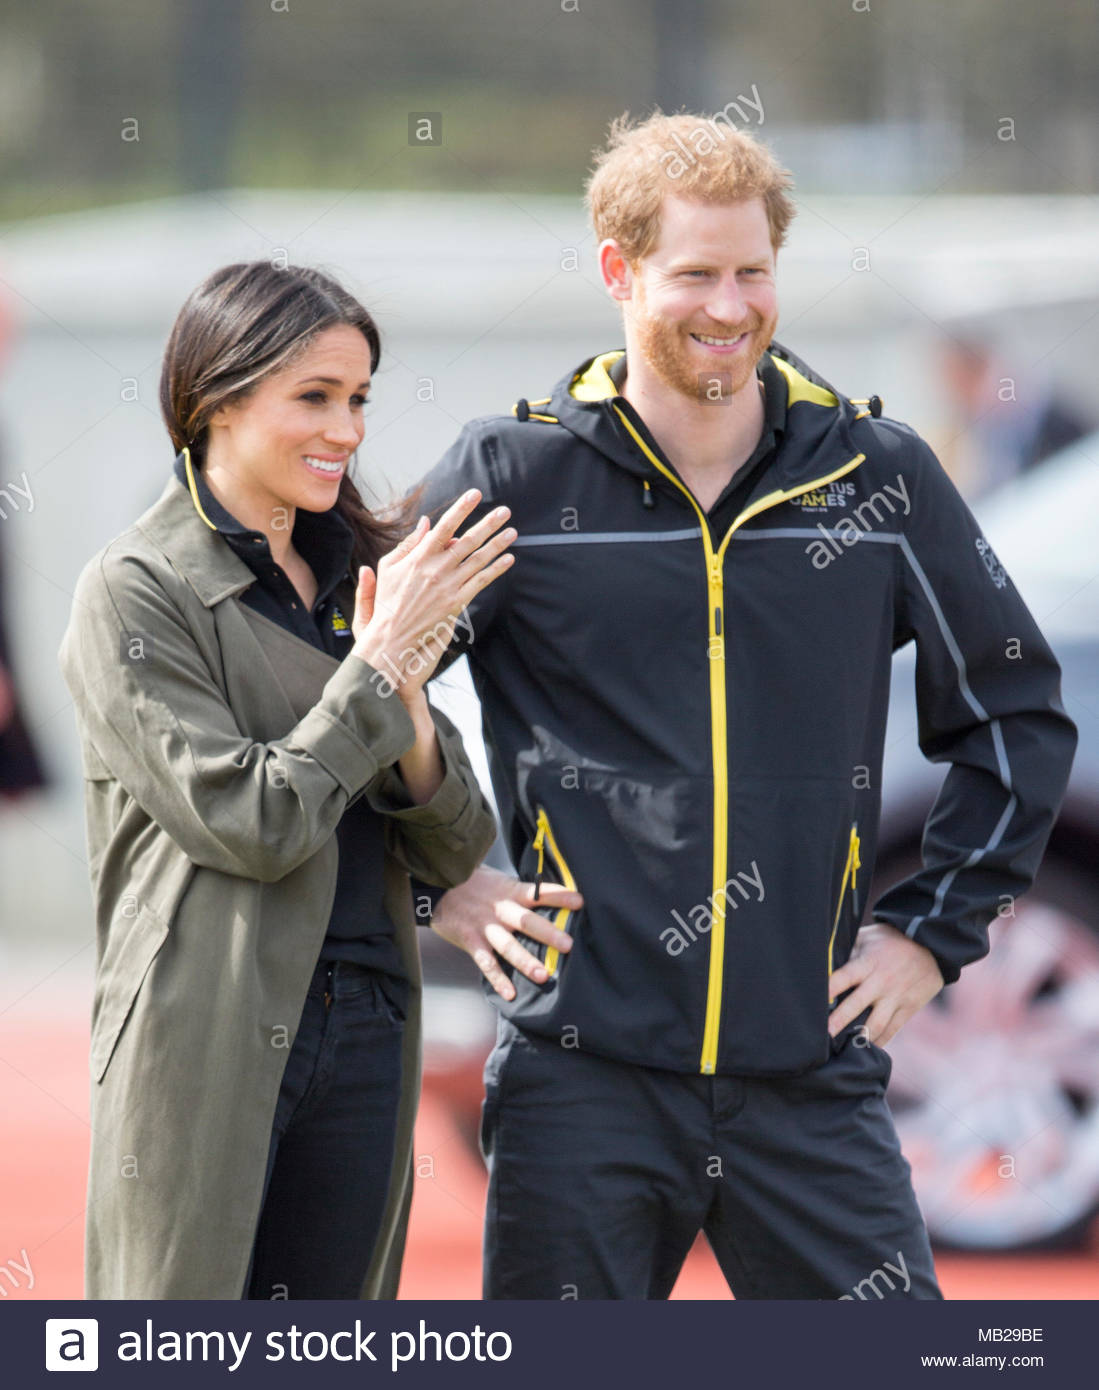 Bath, UK. 6th Apr, 2018. 6th April 2018. Prince Harry and his fiancé Meghan Markle attend the UK team trials for the Sydney 2018 Invictus Games which were held at the Bath University sports facility.  Photograph by Ian Jones - Credit: Ian Jones/Alamy Live News - Stock Image